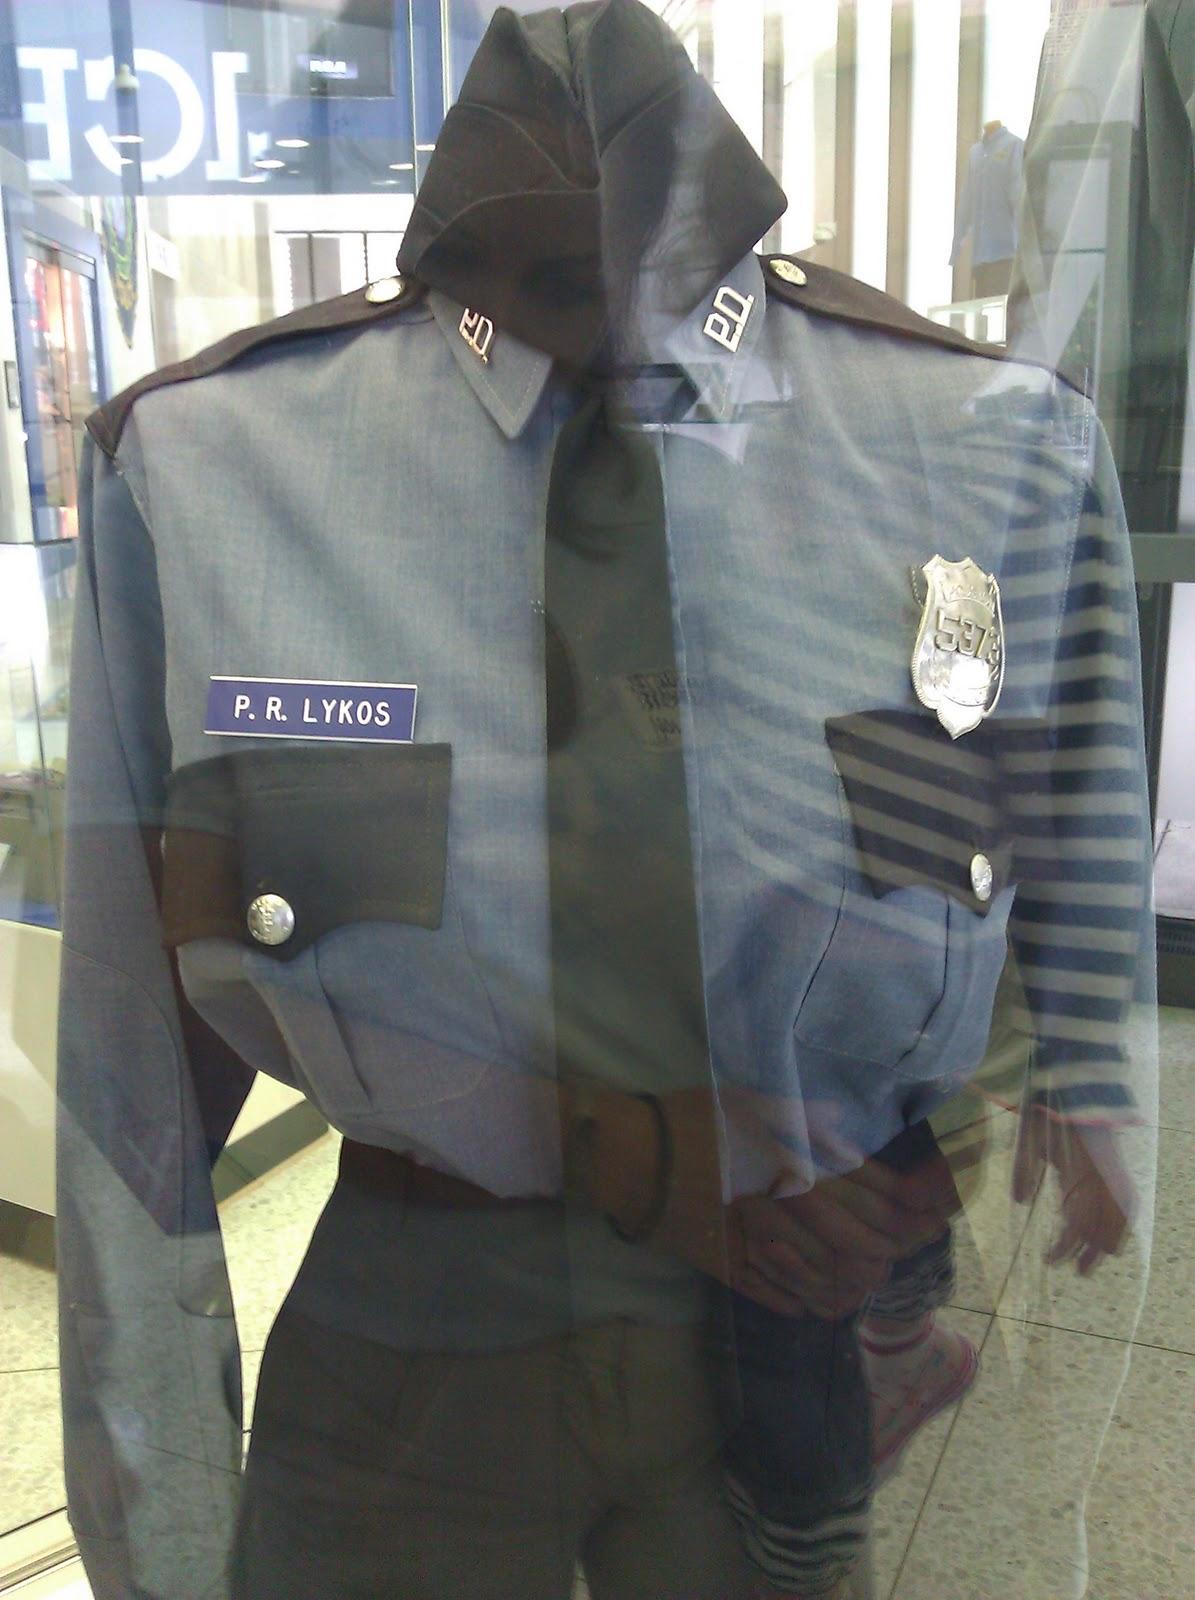 ... the uniform worn by current Harris County District Attorney Pat Lykos